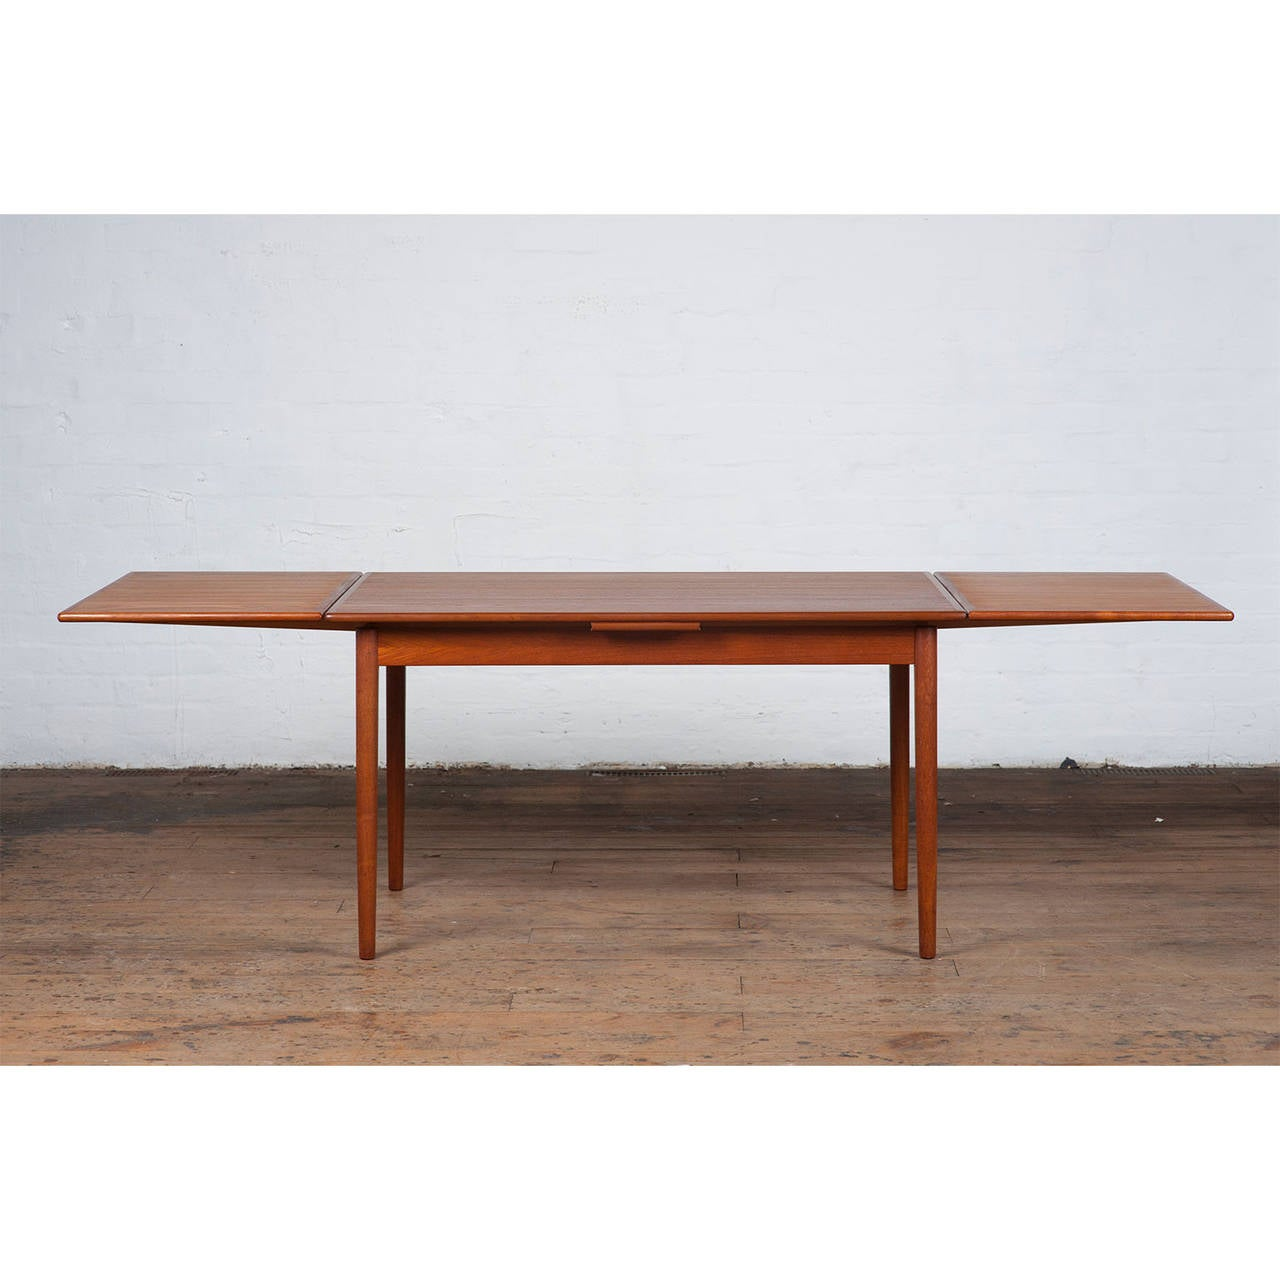 Mid Century Danish Teak Dining Table For Sale at 1stdibs : NewTeakDiningTableHEROl from www.1stdibs.com size 1280 x 1280 jpeg 101kB